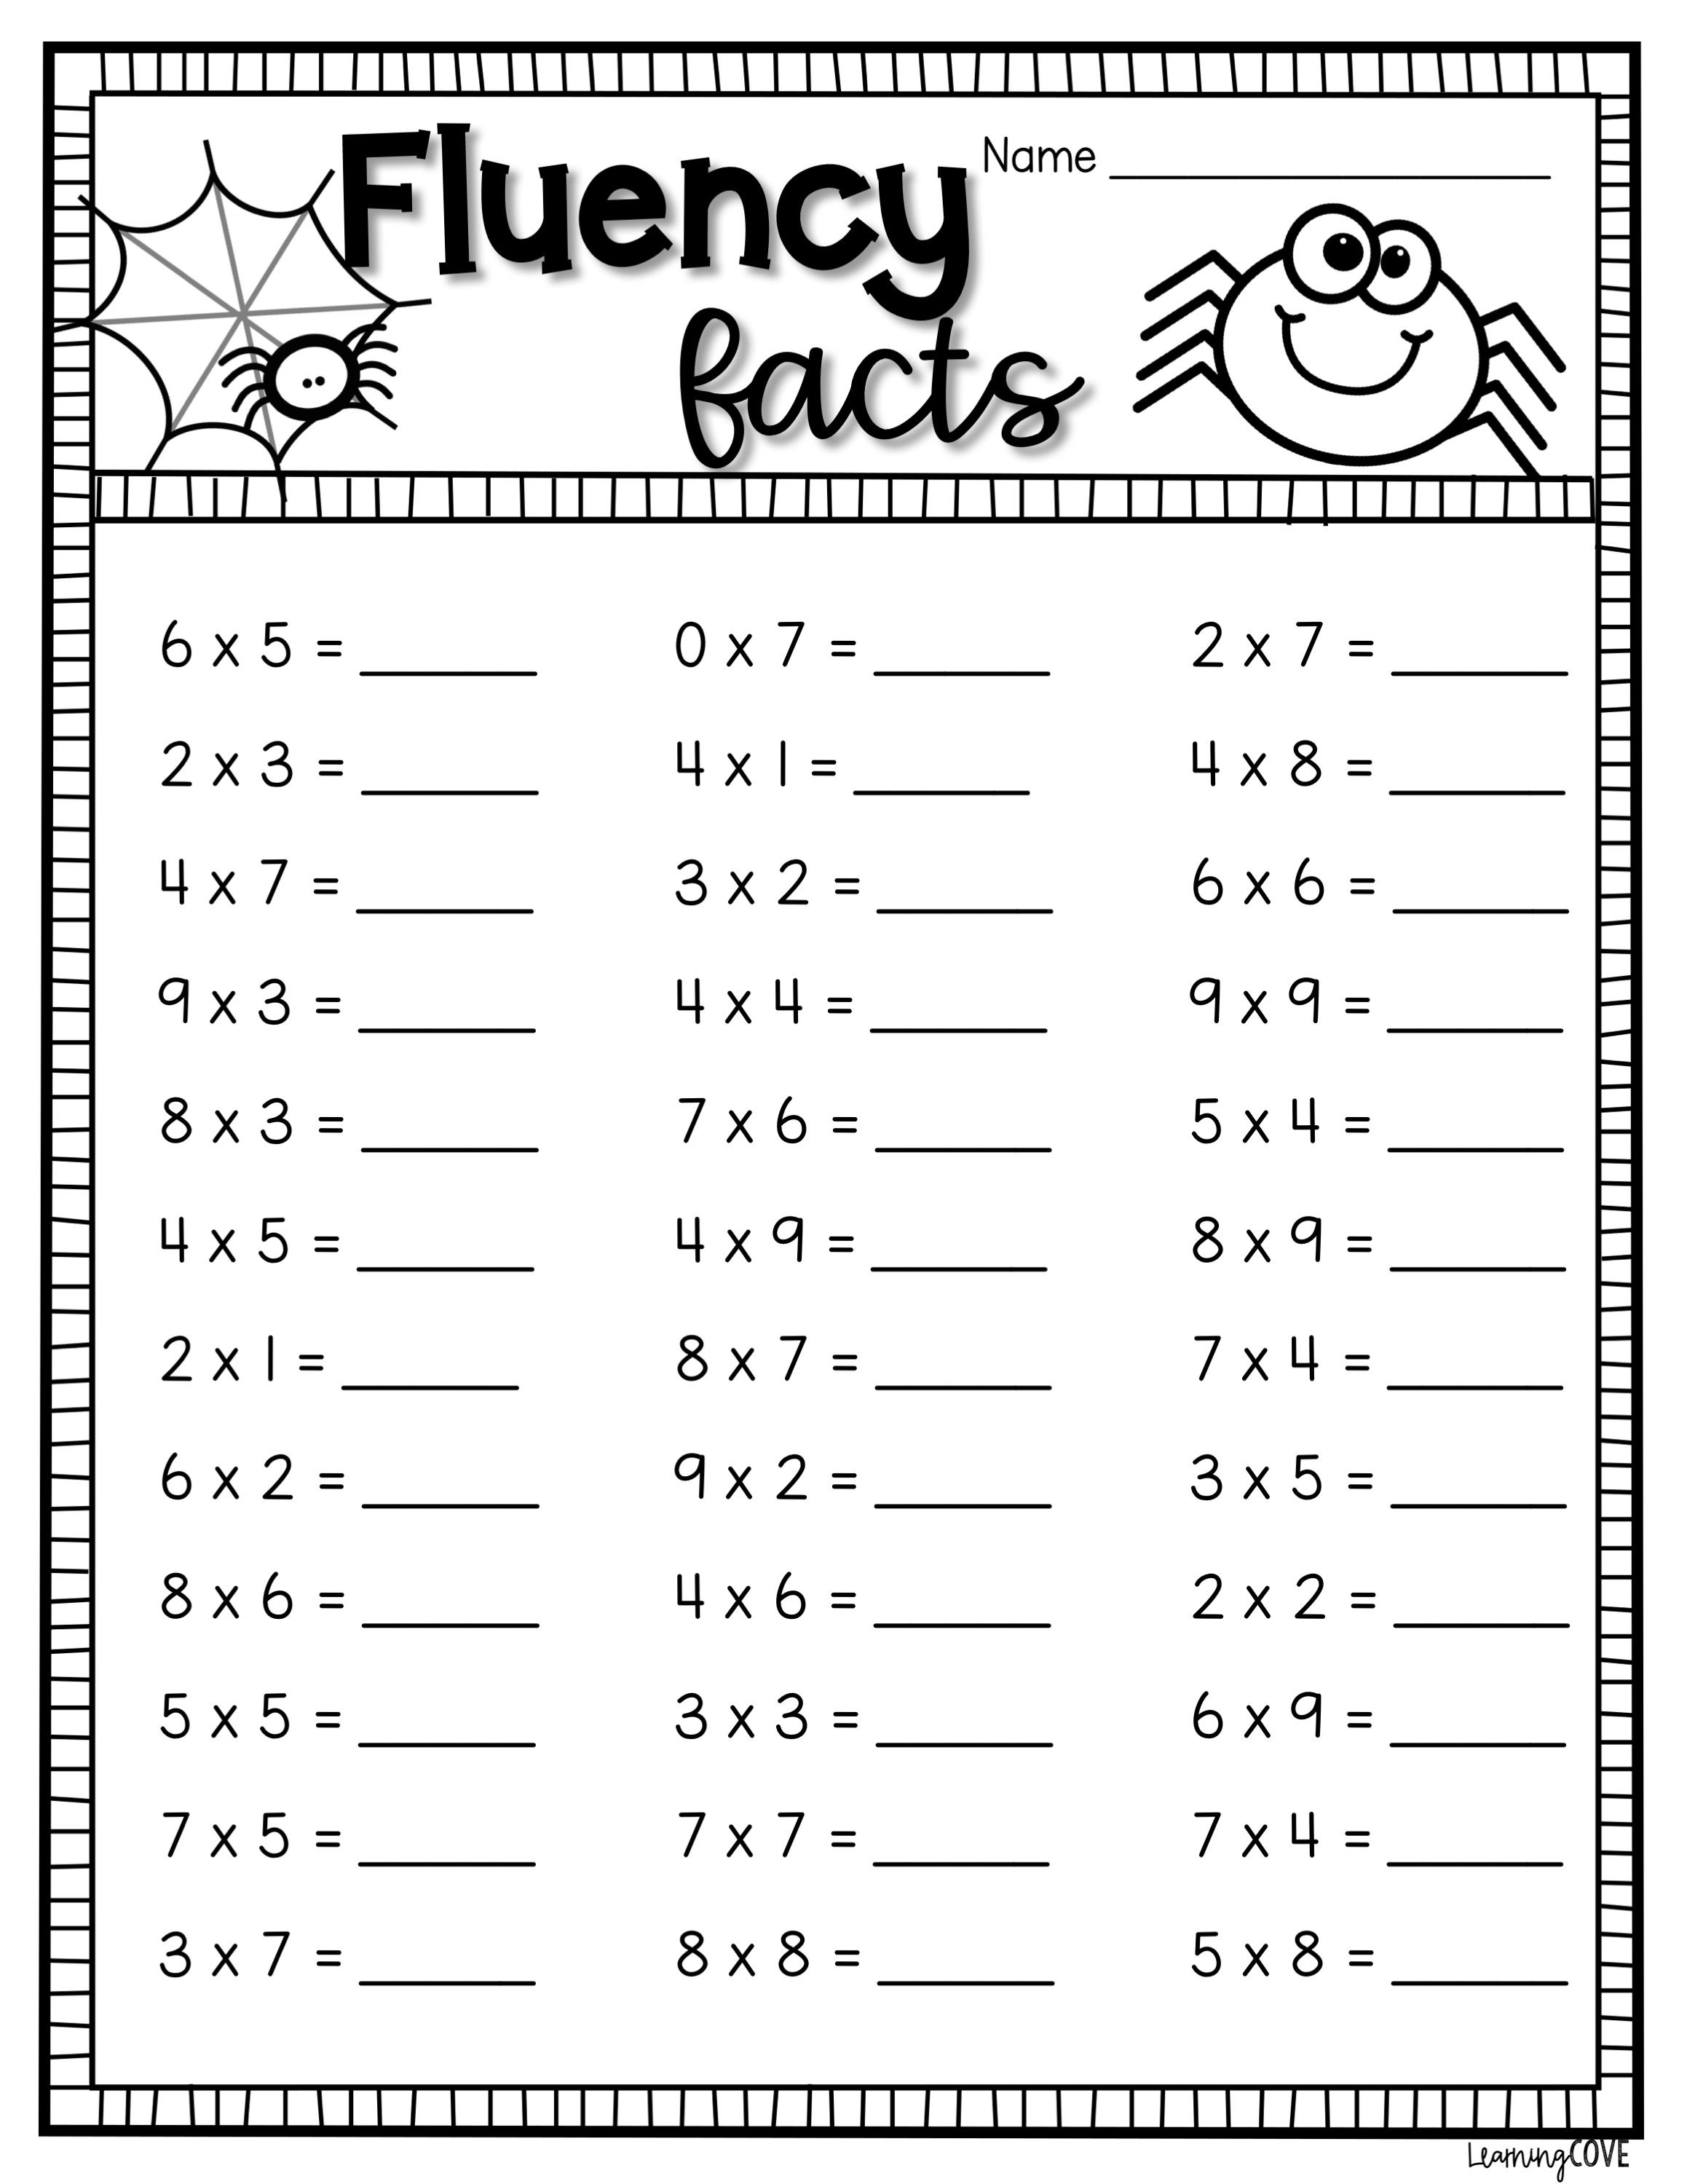 hight resolution of Halloween Math Multiplication Worksheets   Math addition worksheets